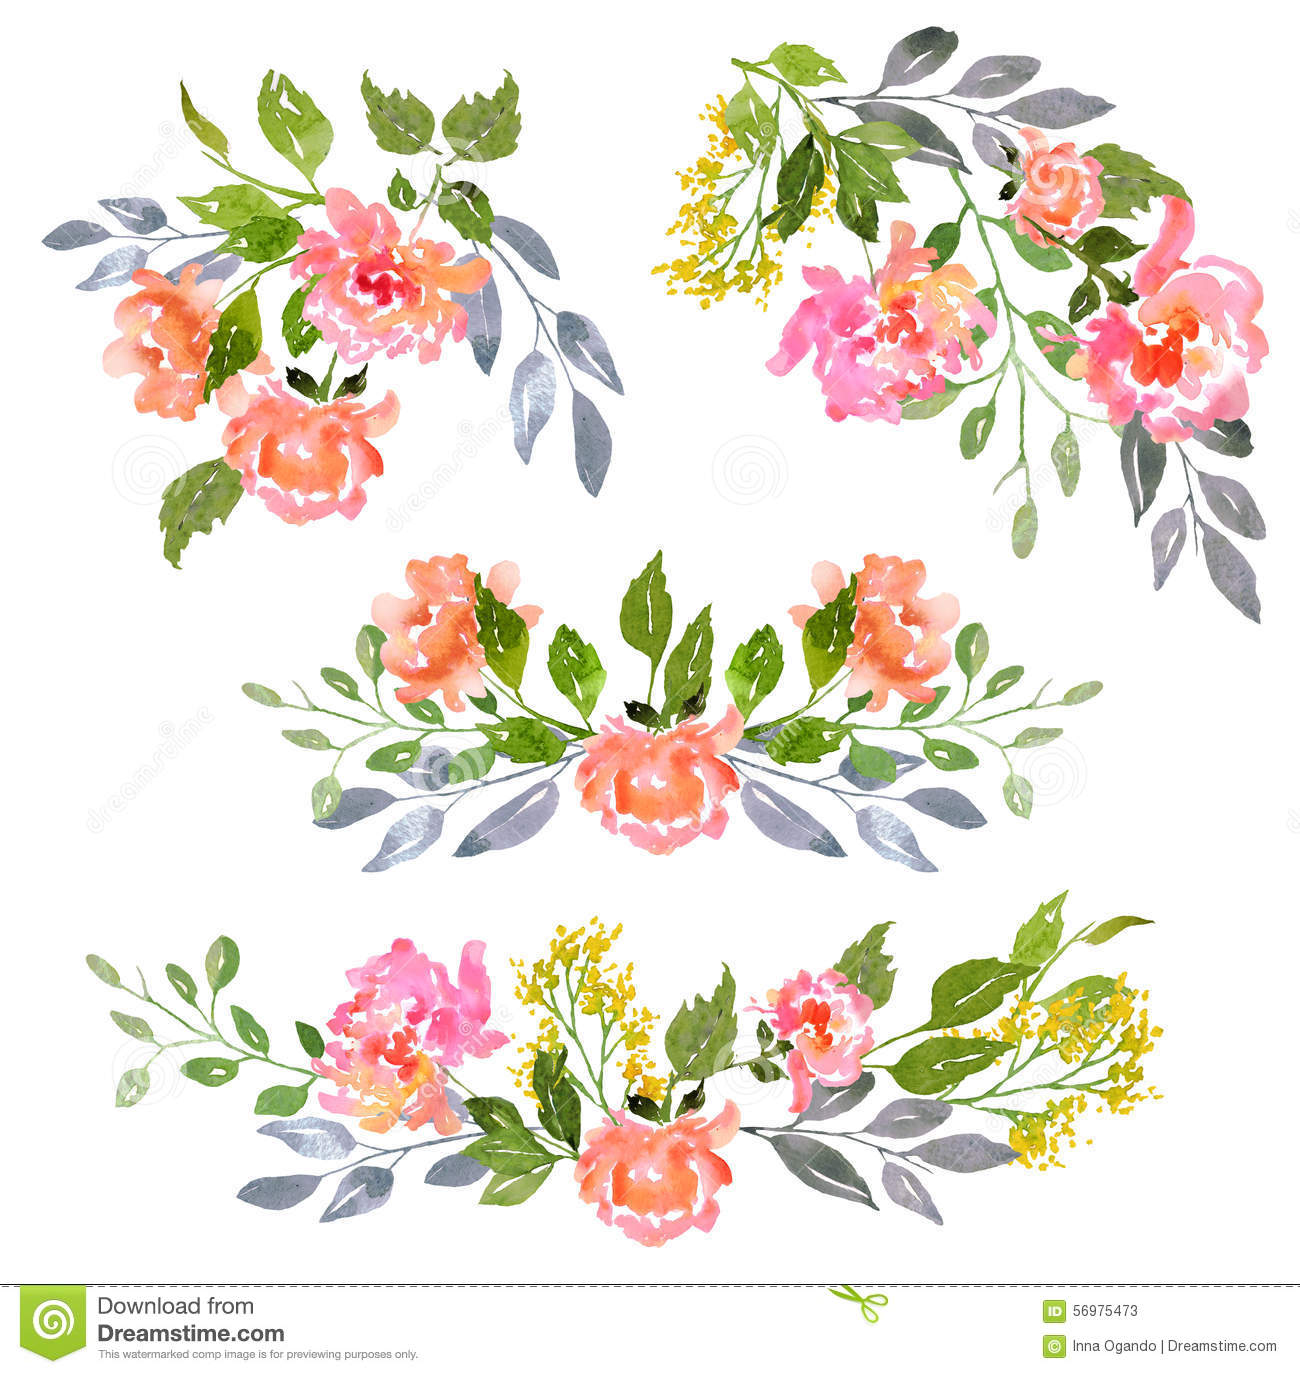 Watercolor clipart flower vector black and white download 17 Best images about Logos on Pinterest | Clip art, Website logo ... vector black and white download